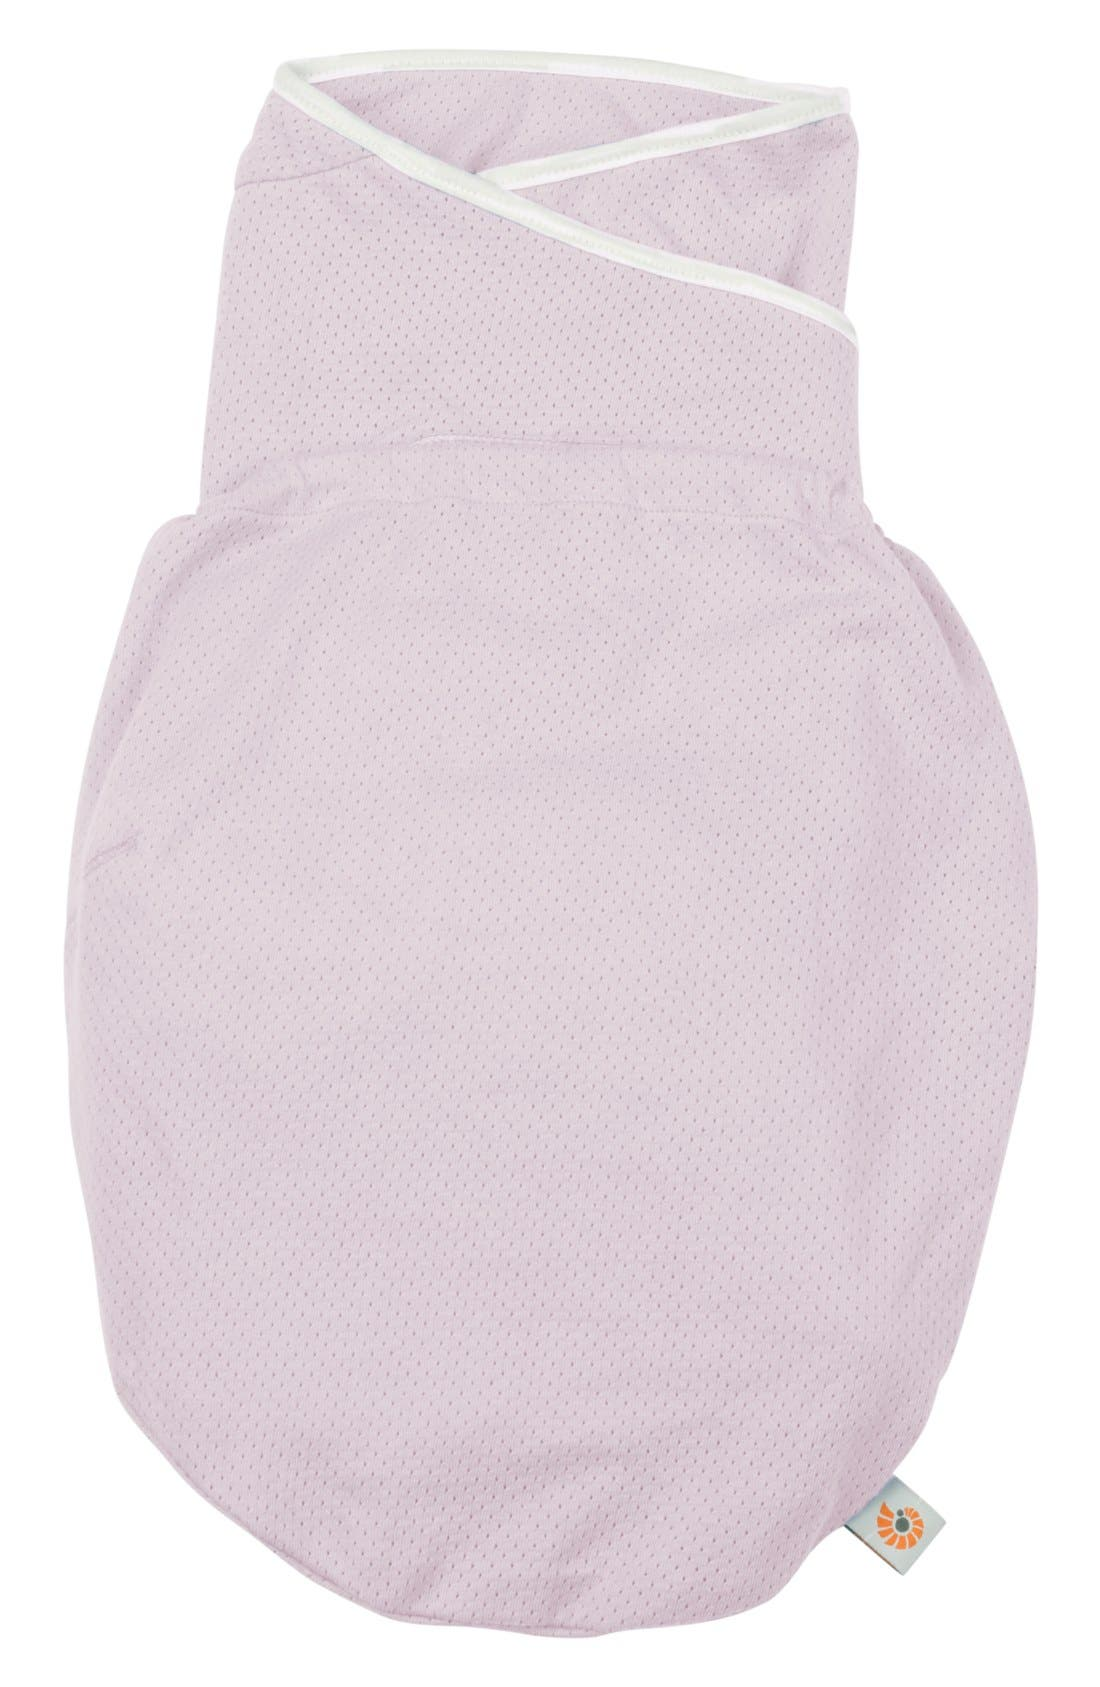 ERGOBABY 'Lightweight' Swaddler, Main, color, LILAC